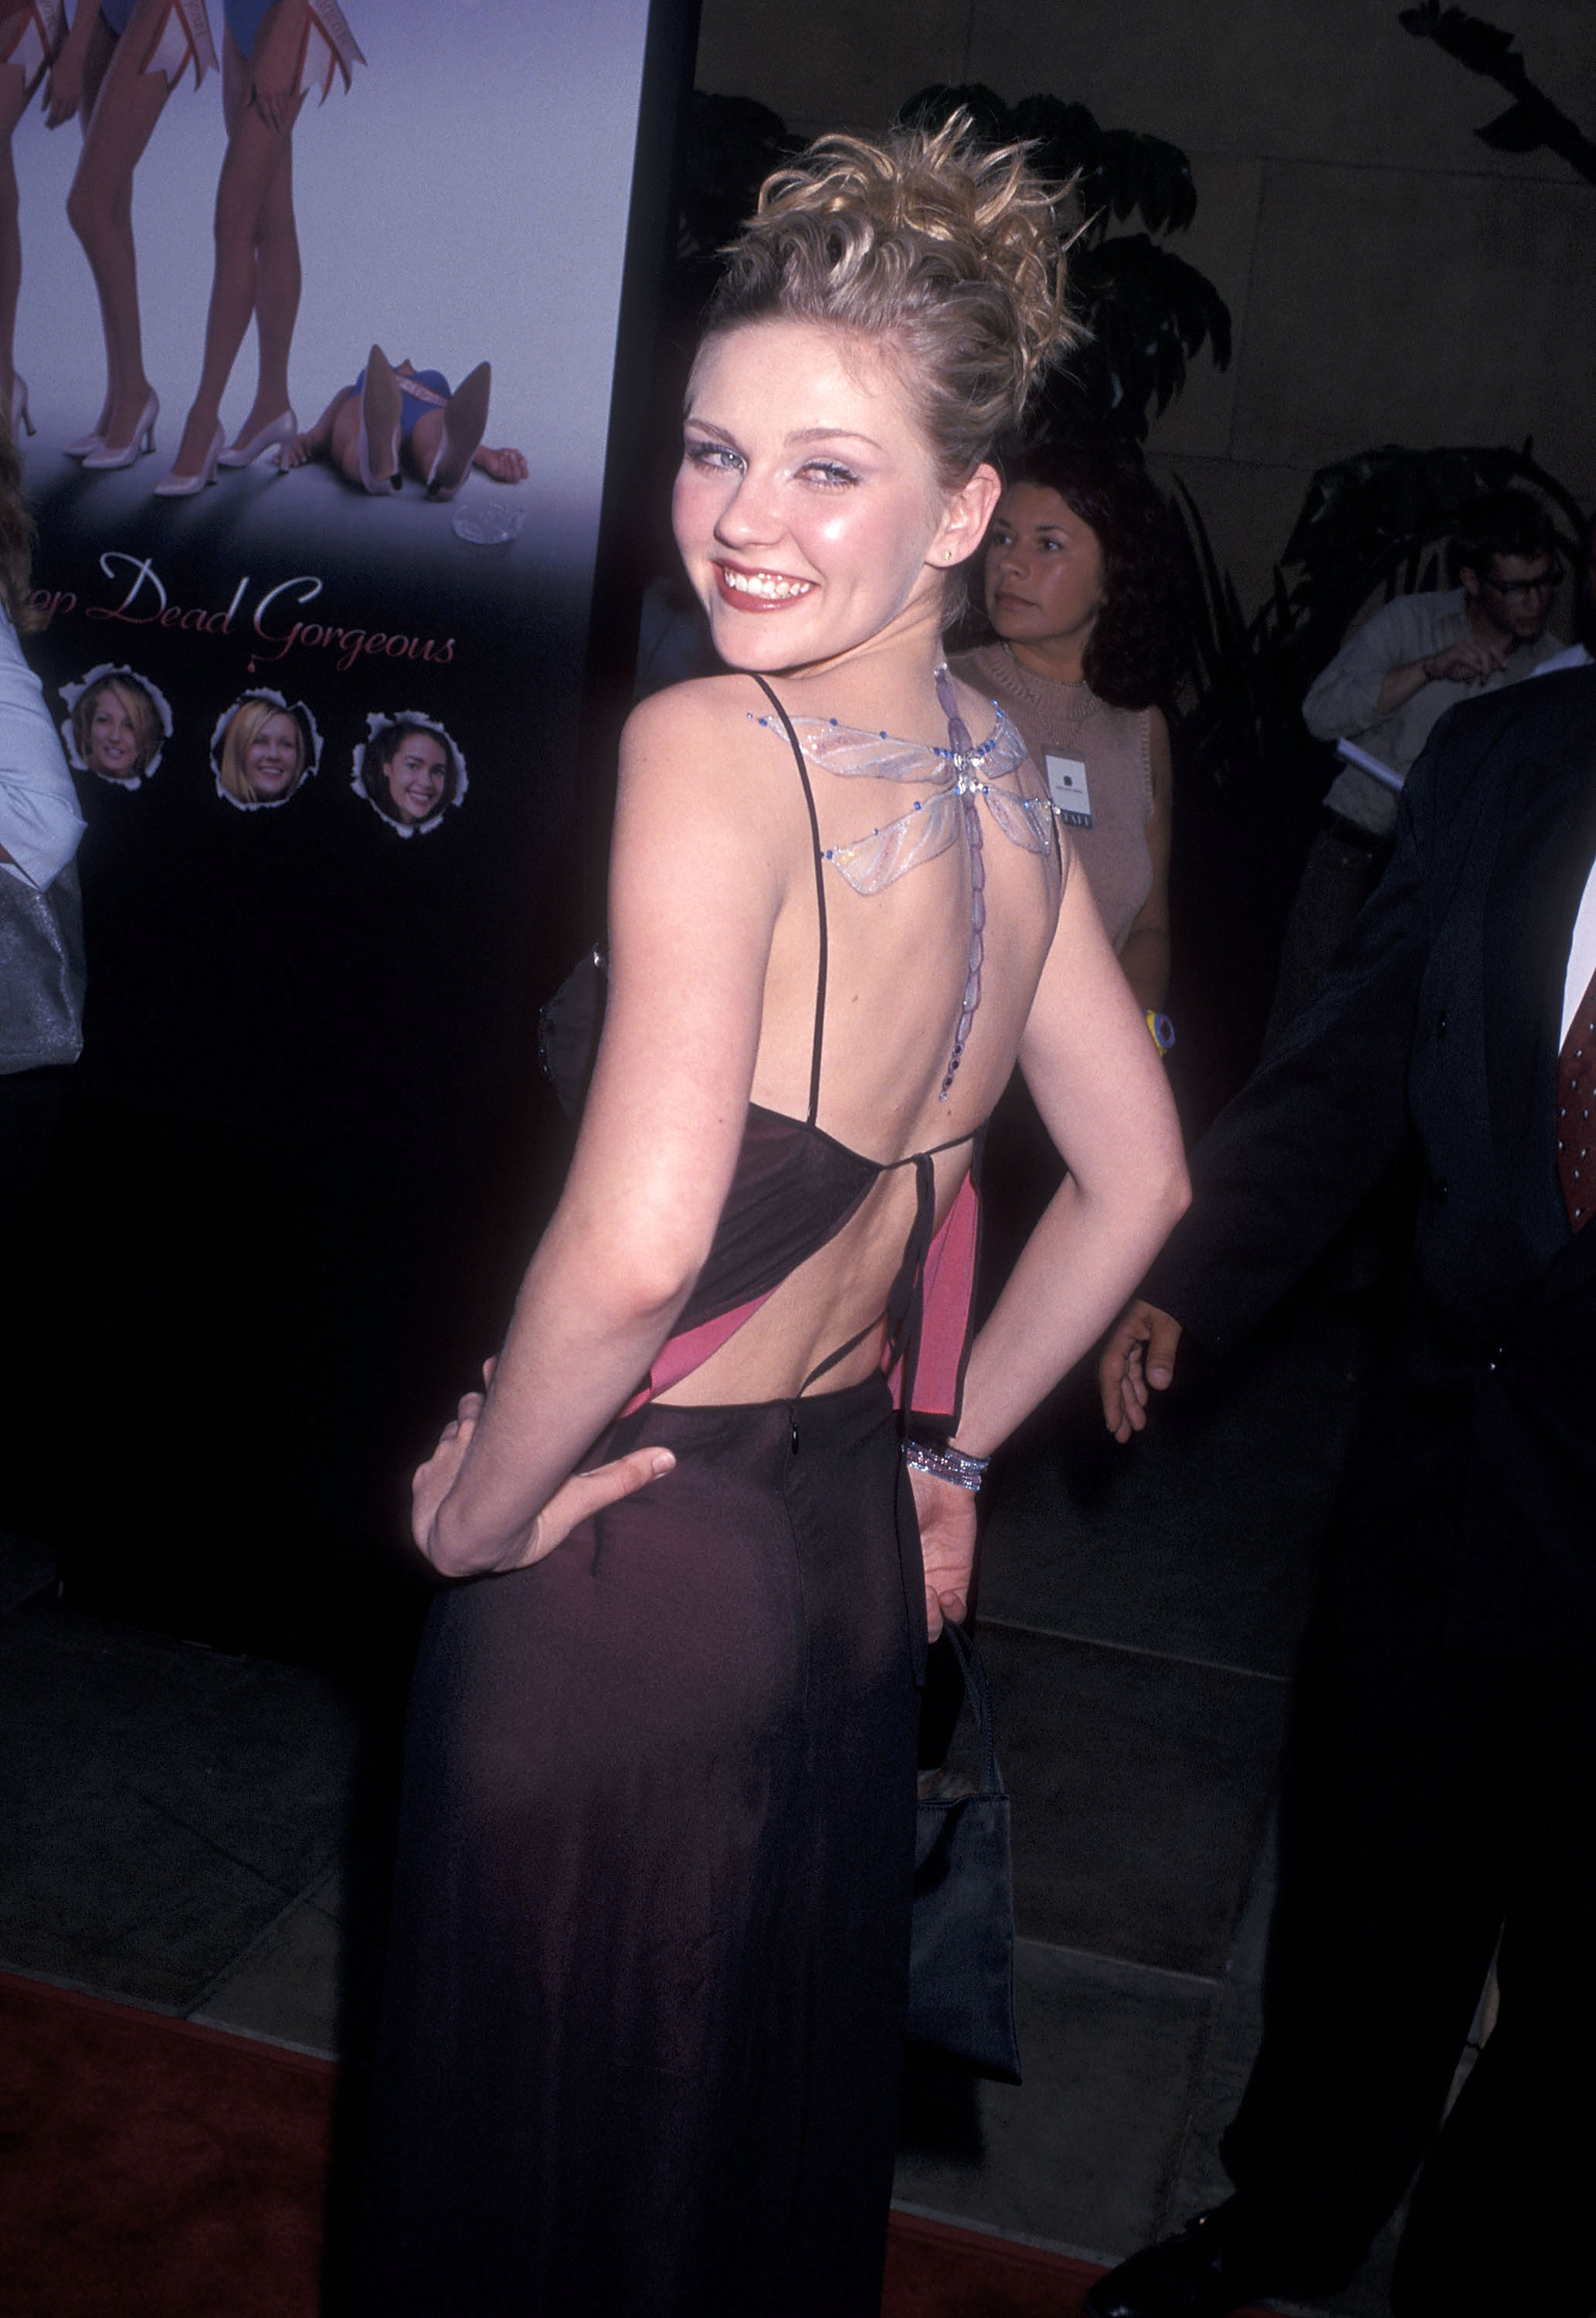 kirsten dunst on the red carpet in a backless dress and 90s dragonfly body art